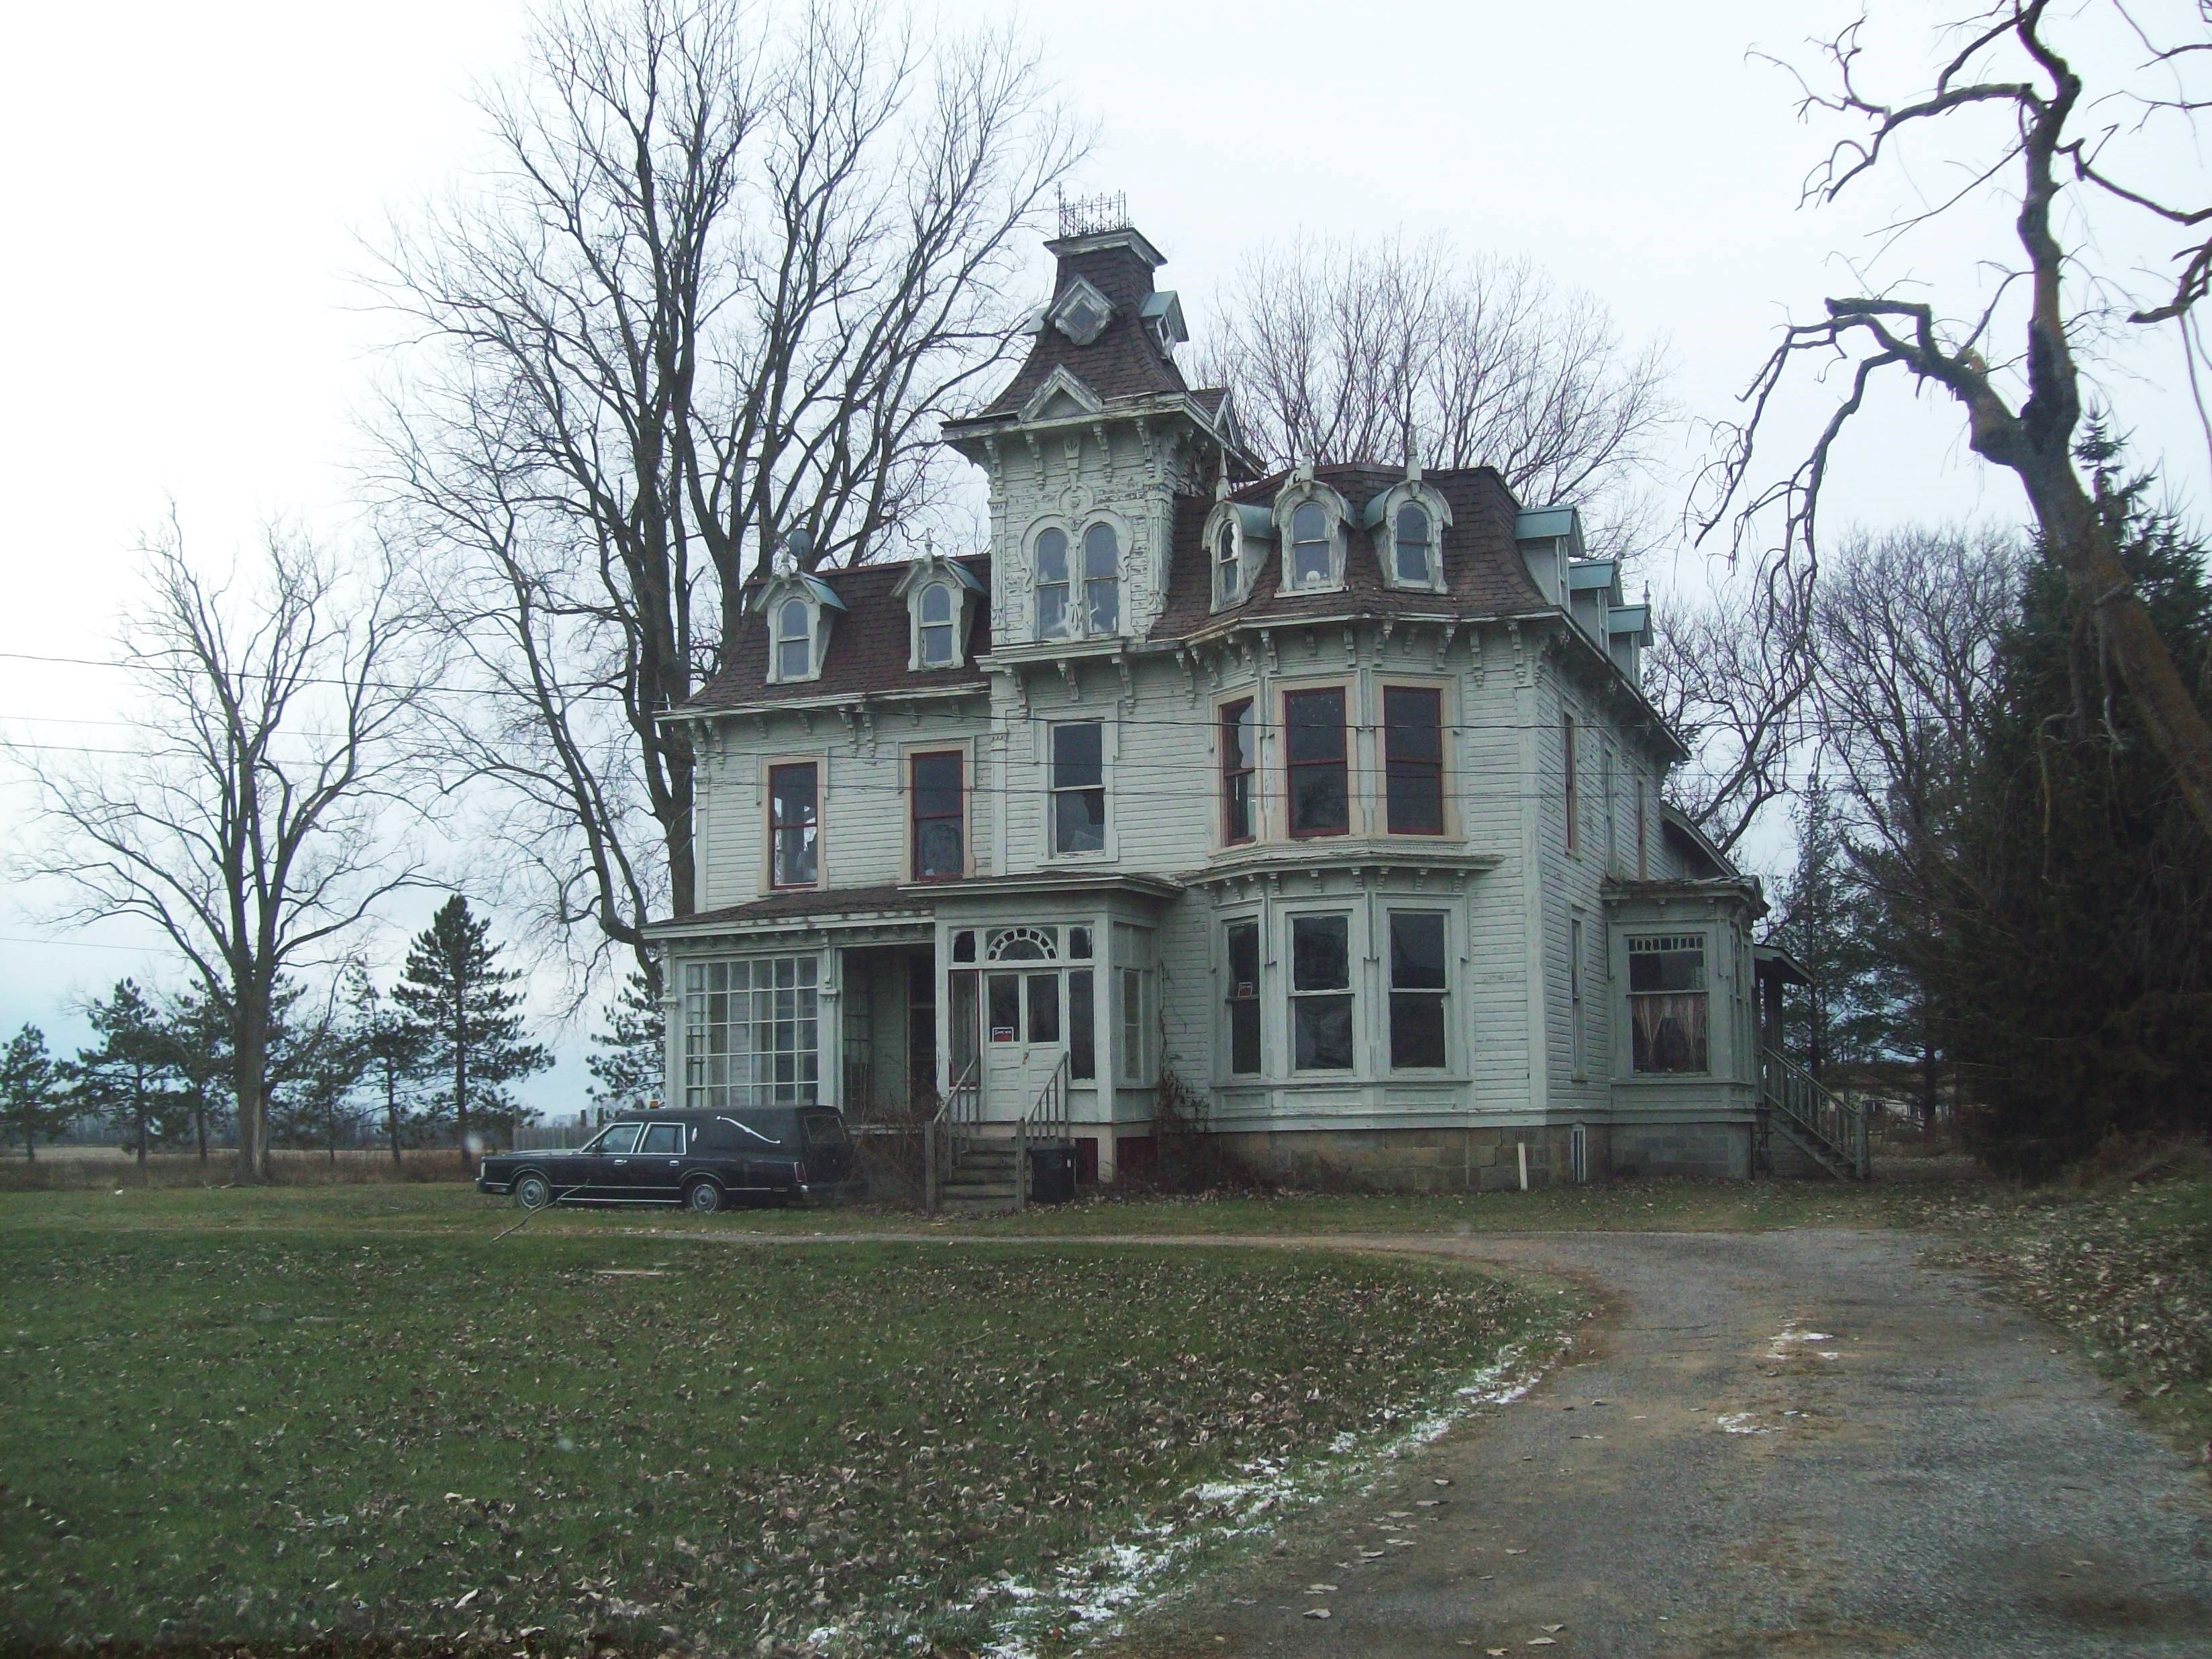 Haunted House In Michigan The Stories They Could Tell